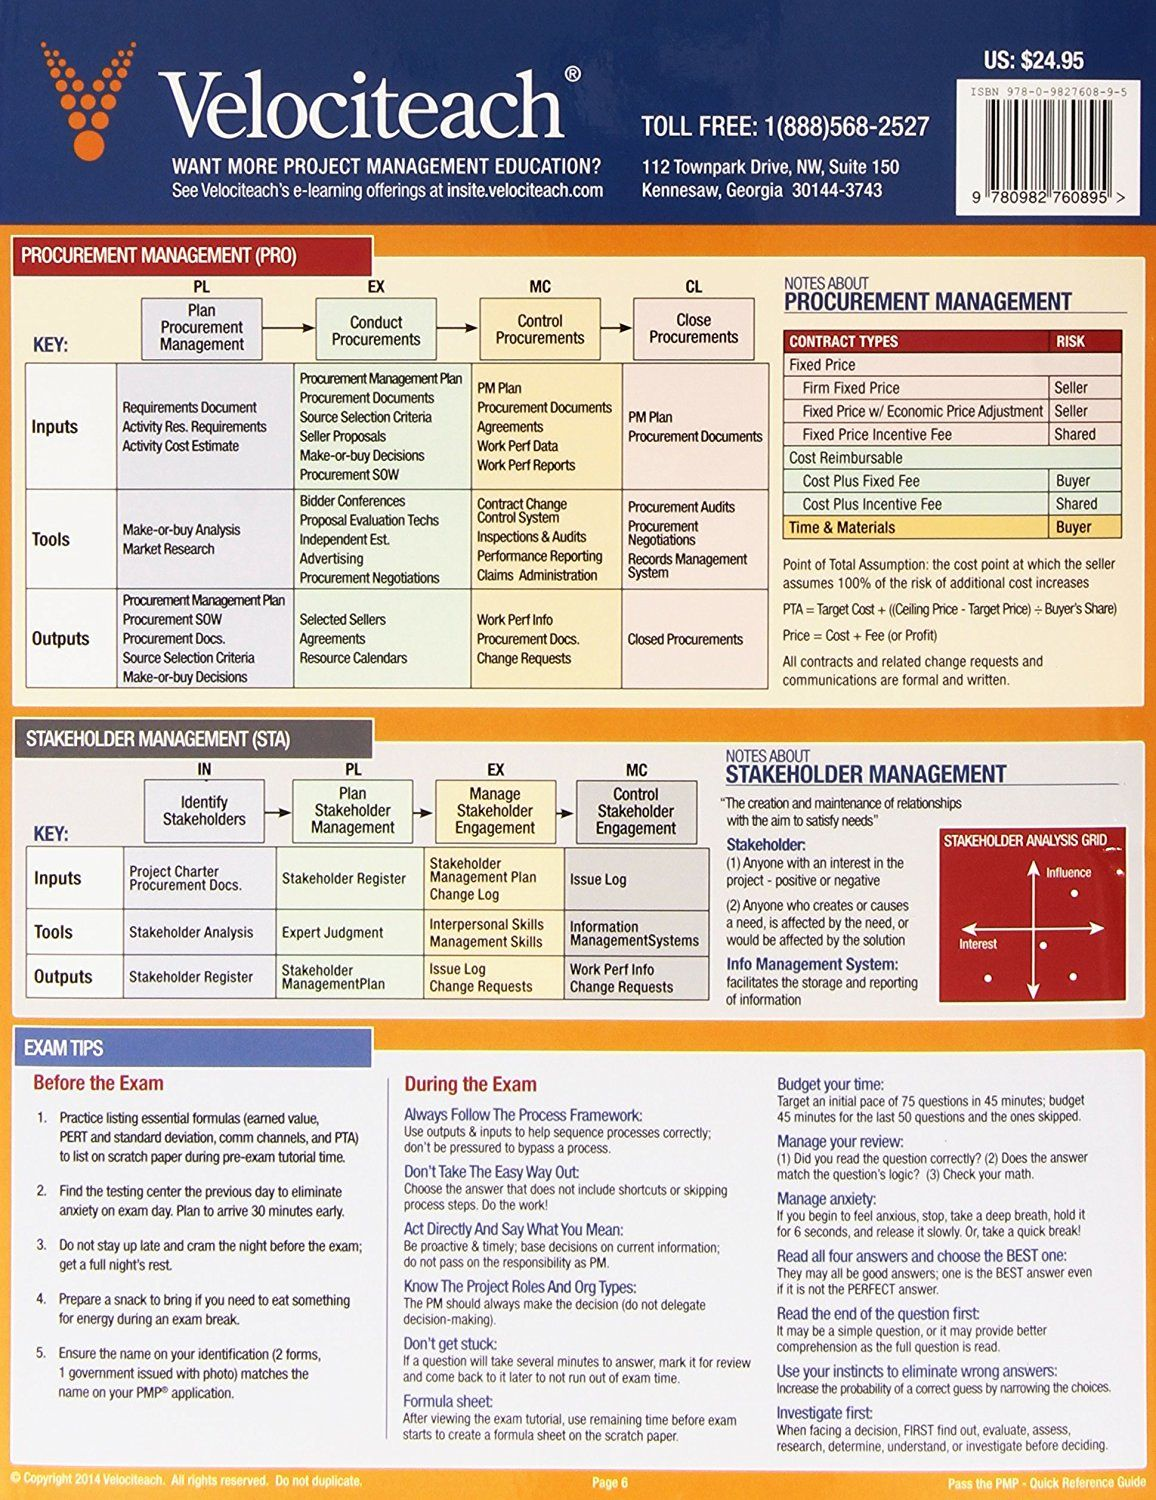 The pmp exam quick reference guide fifth edition test prep a quick reference guide for the pmp exam this sturdy laminated card accompanies the pmp exam how to pass on your first try edition 1betcityfo Image collections